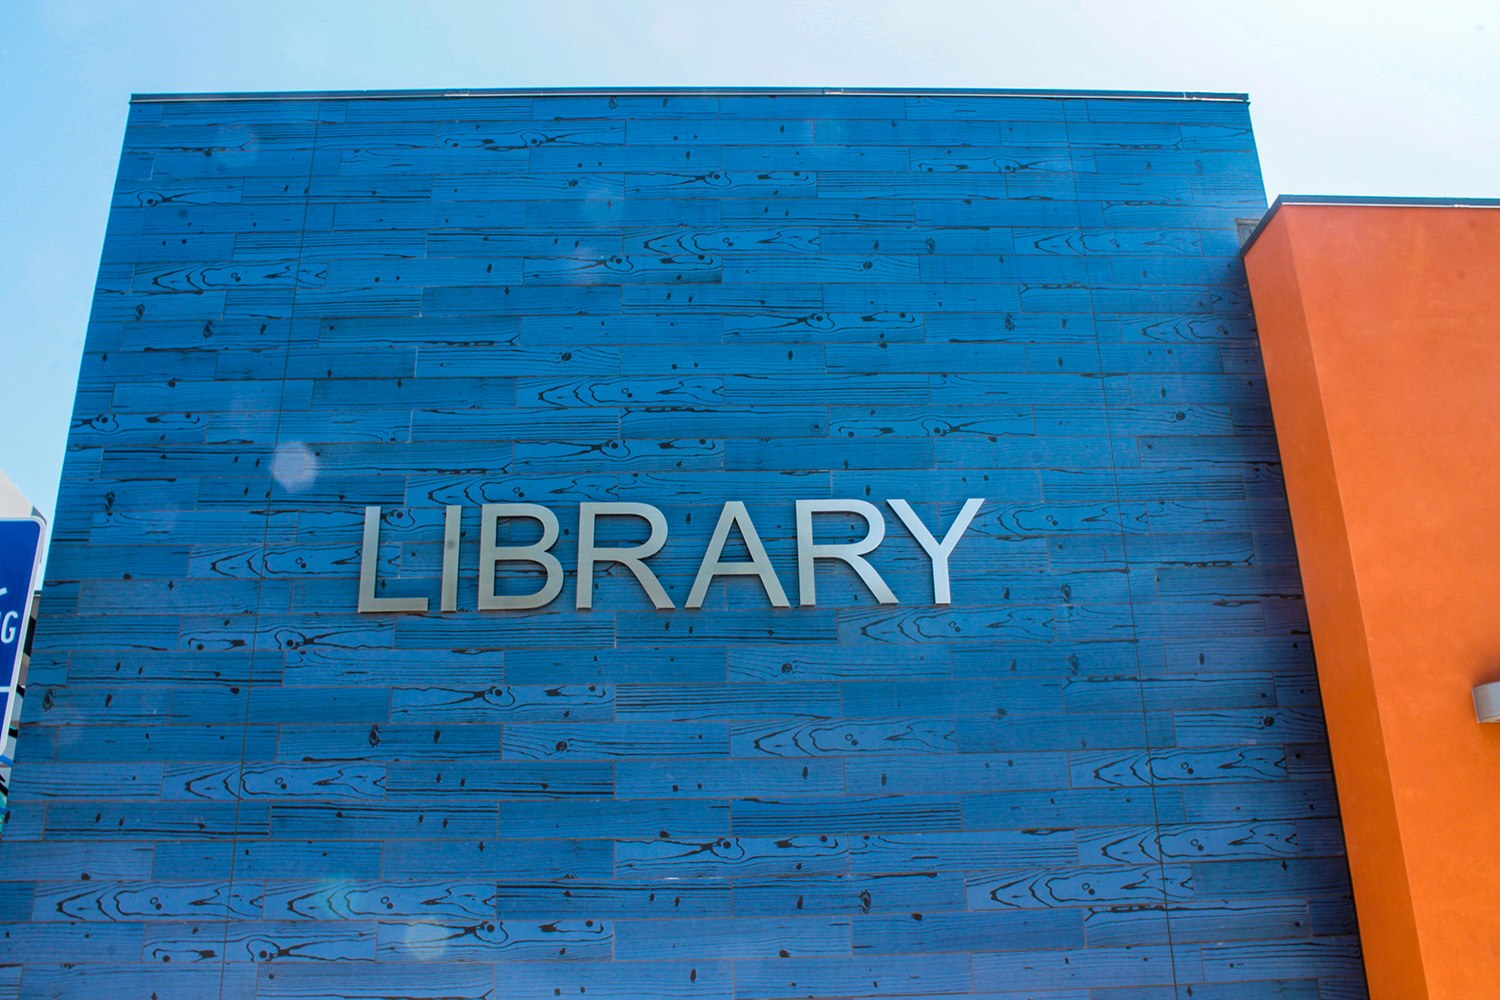 300-IB-Library-sign